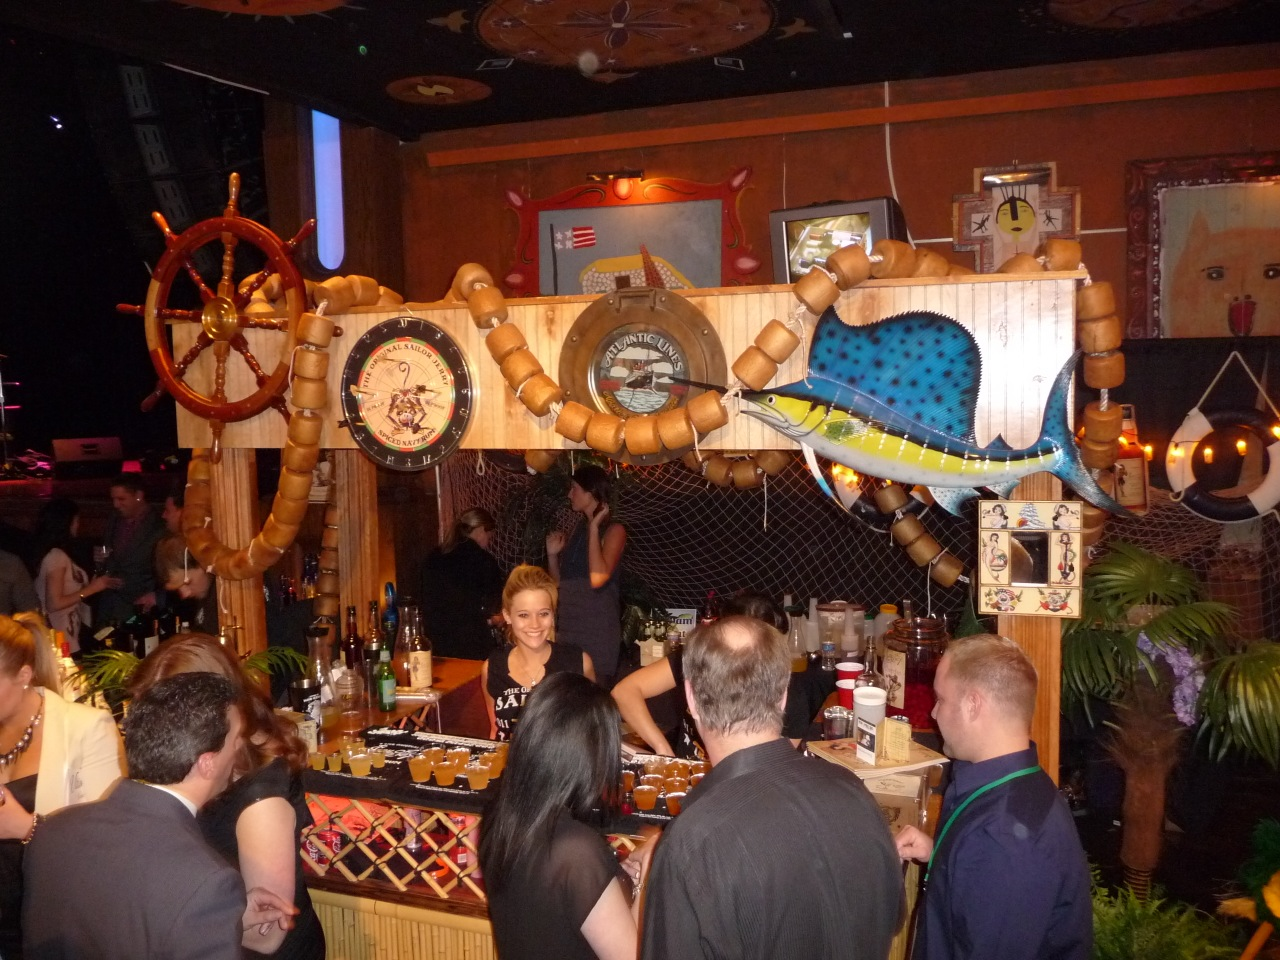 Bar Rental NJ NYC Eggsotic Events Nautical Theme Bar Beach Bar Sailor Jerry Rum Bar 1.jpg